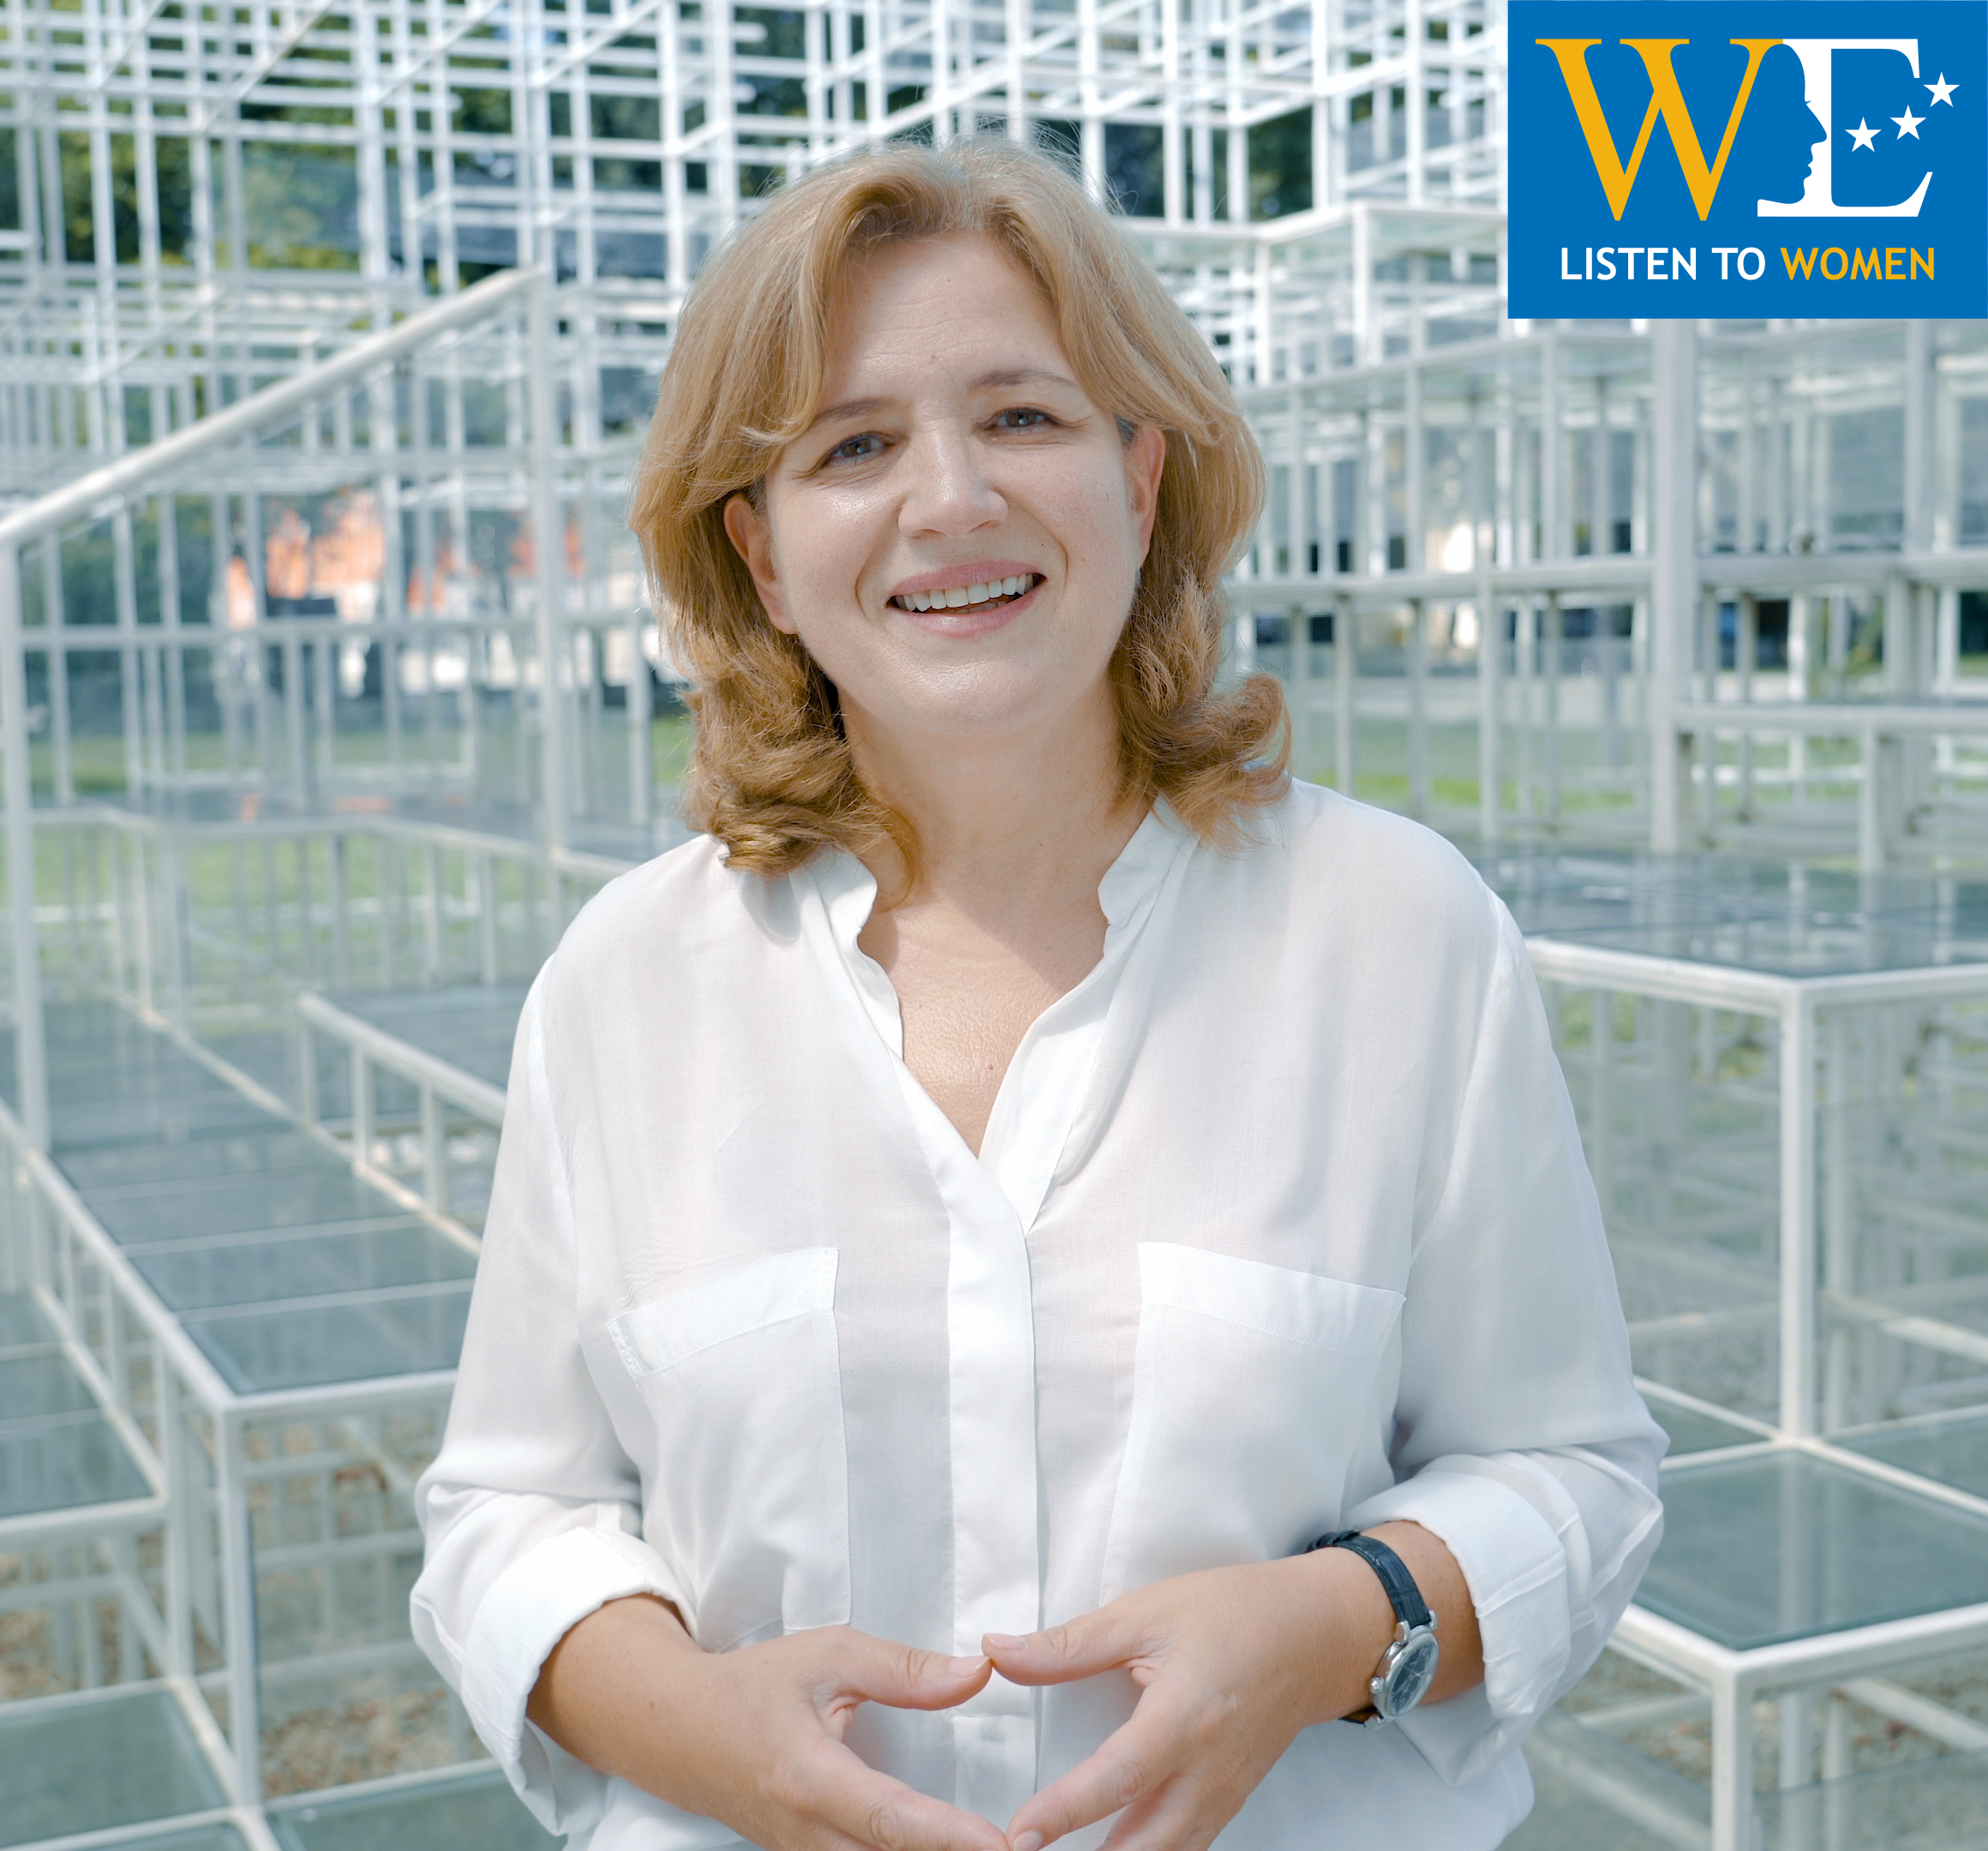 RCC's WE: Iris Gjinovci, SchoolMe Platform Co-Founder and Director (Photo: RCC/Kliker)